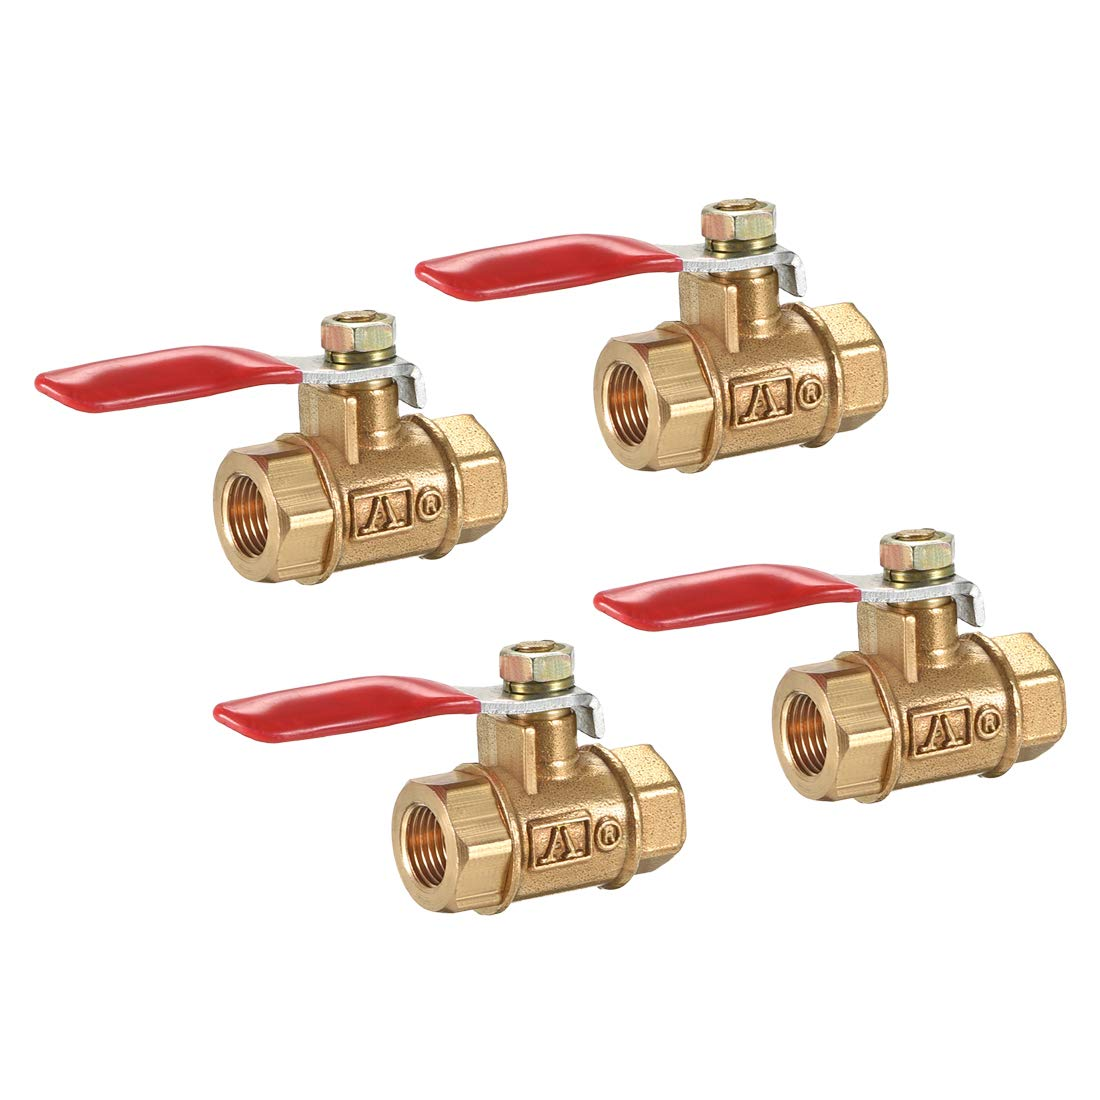 uxcell Brass Air Fixed price for sale Ball Valve Shut-Off Female to Switch Classic Femal G1 8